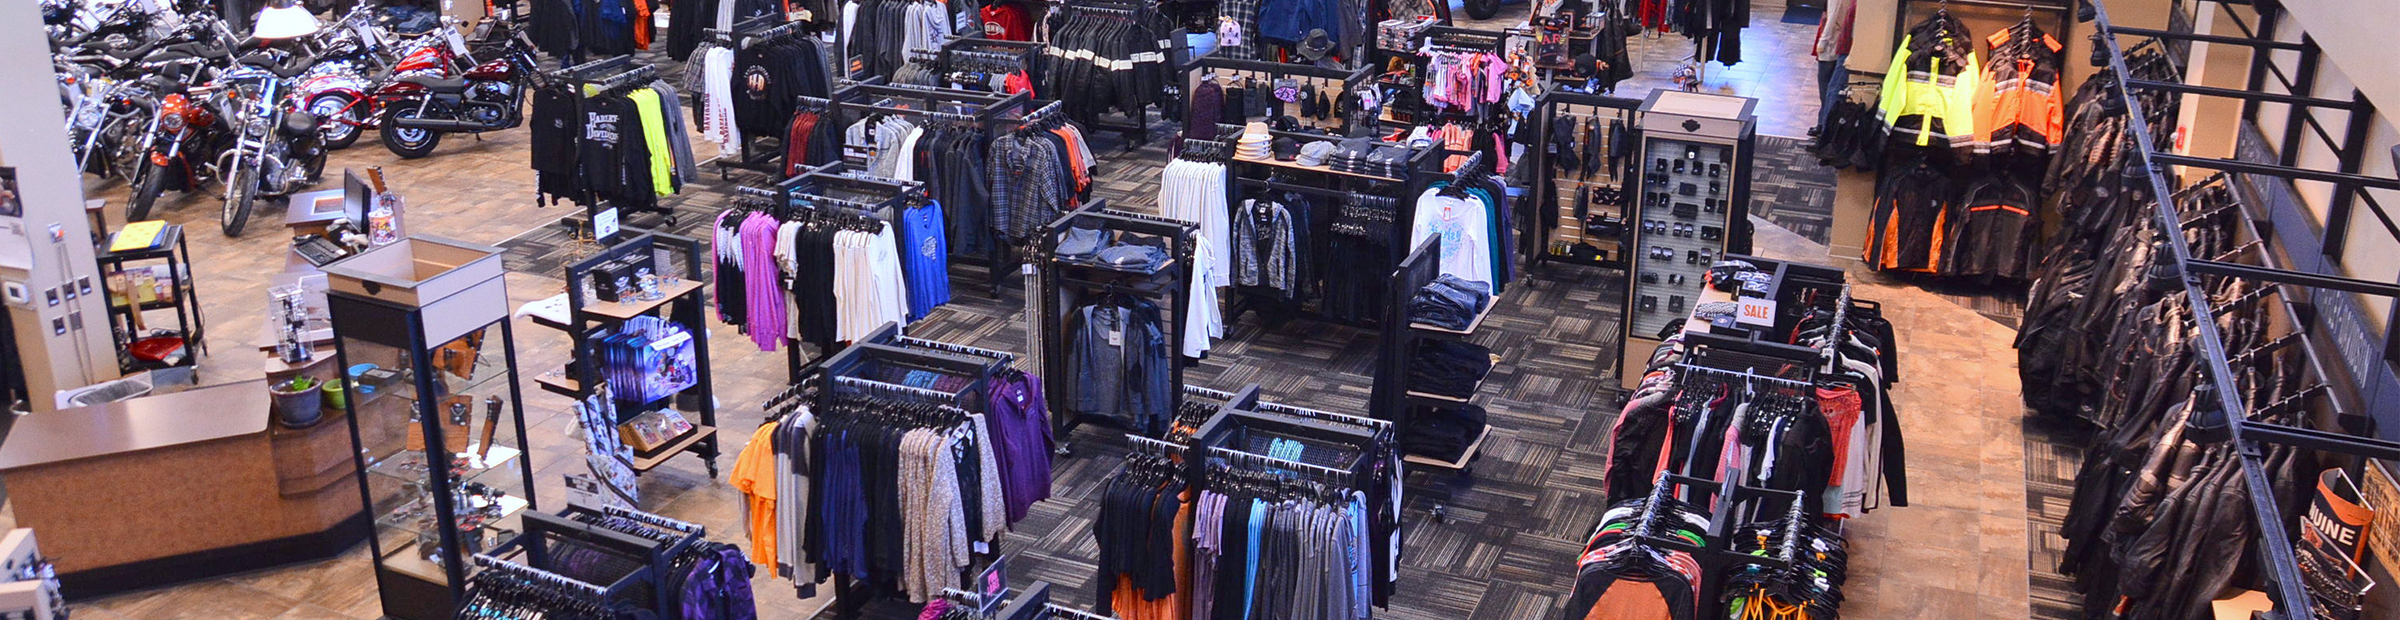 MotorClothes<sup>®</sup> Merchandise